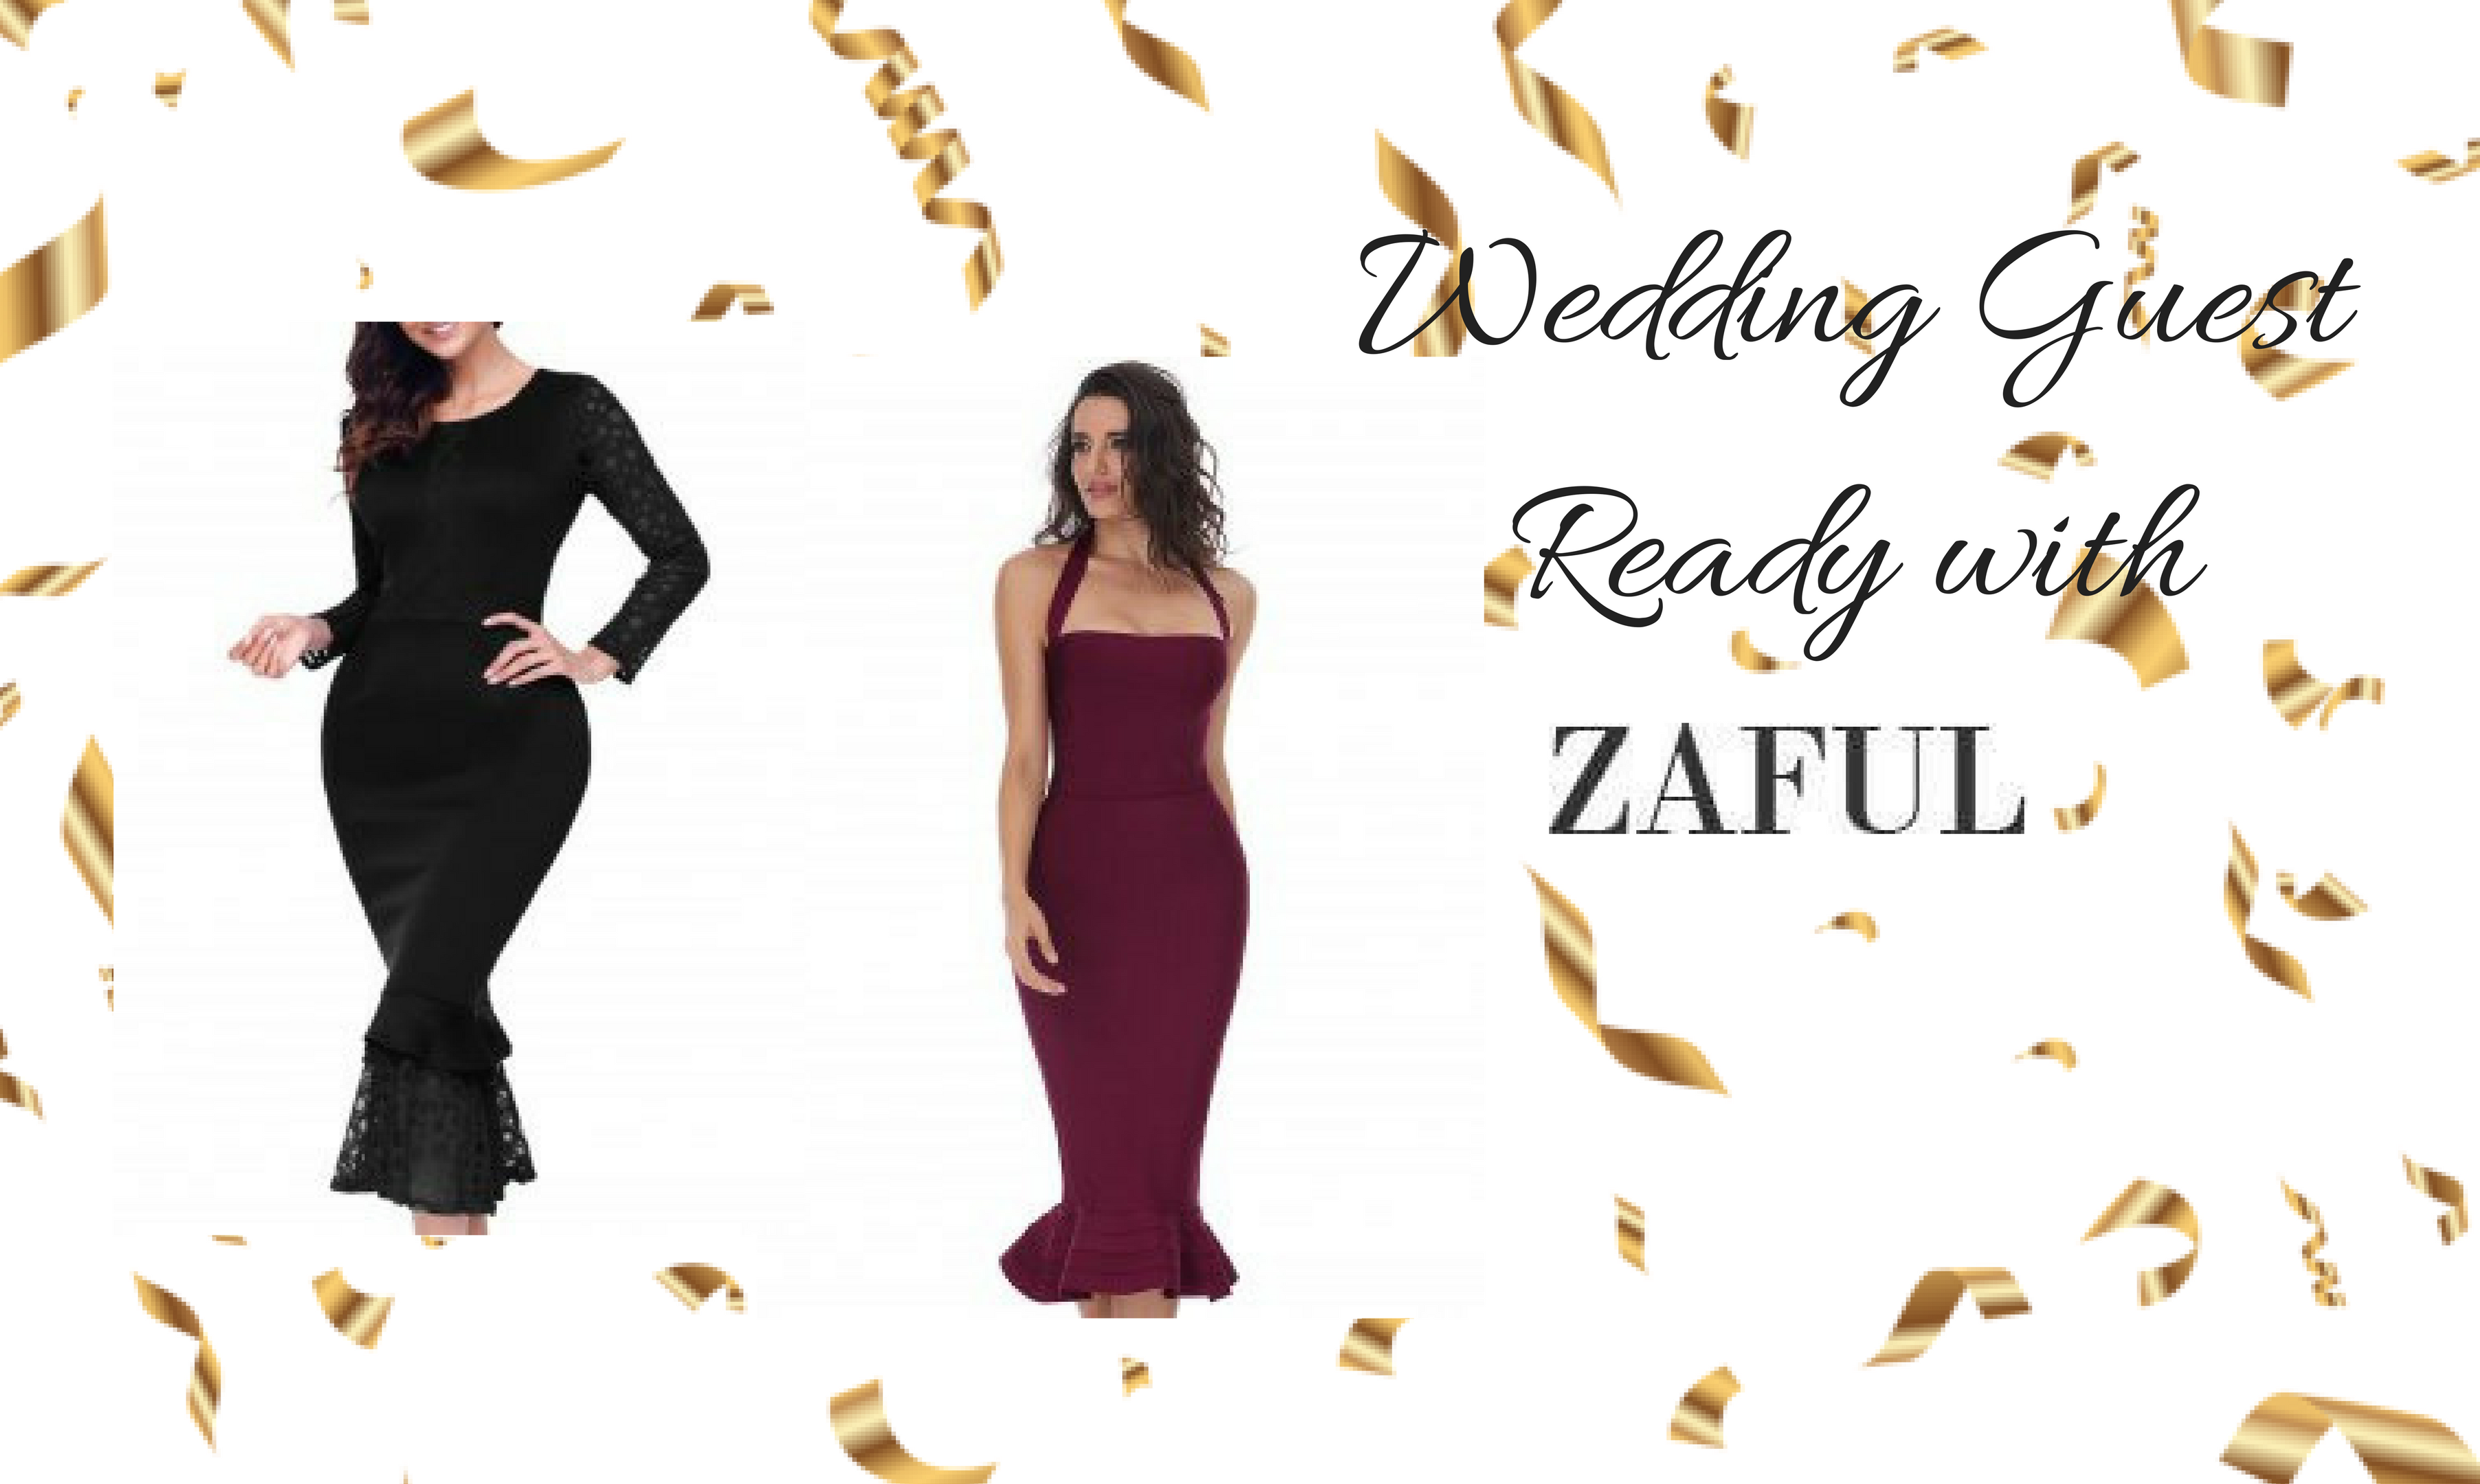 WEDDING GUEST READY WITH ZAFUL (Cocktail, Trumpet and more dresses…)